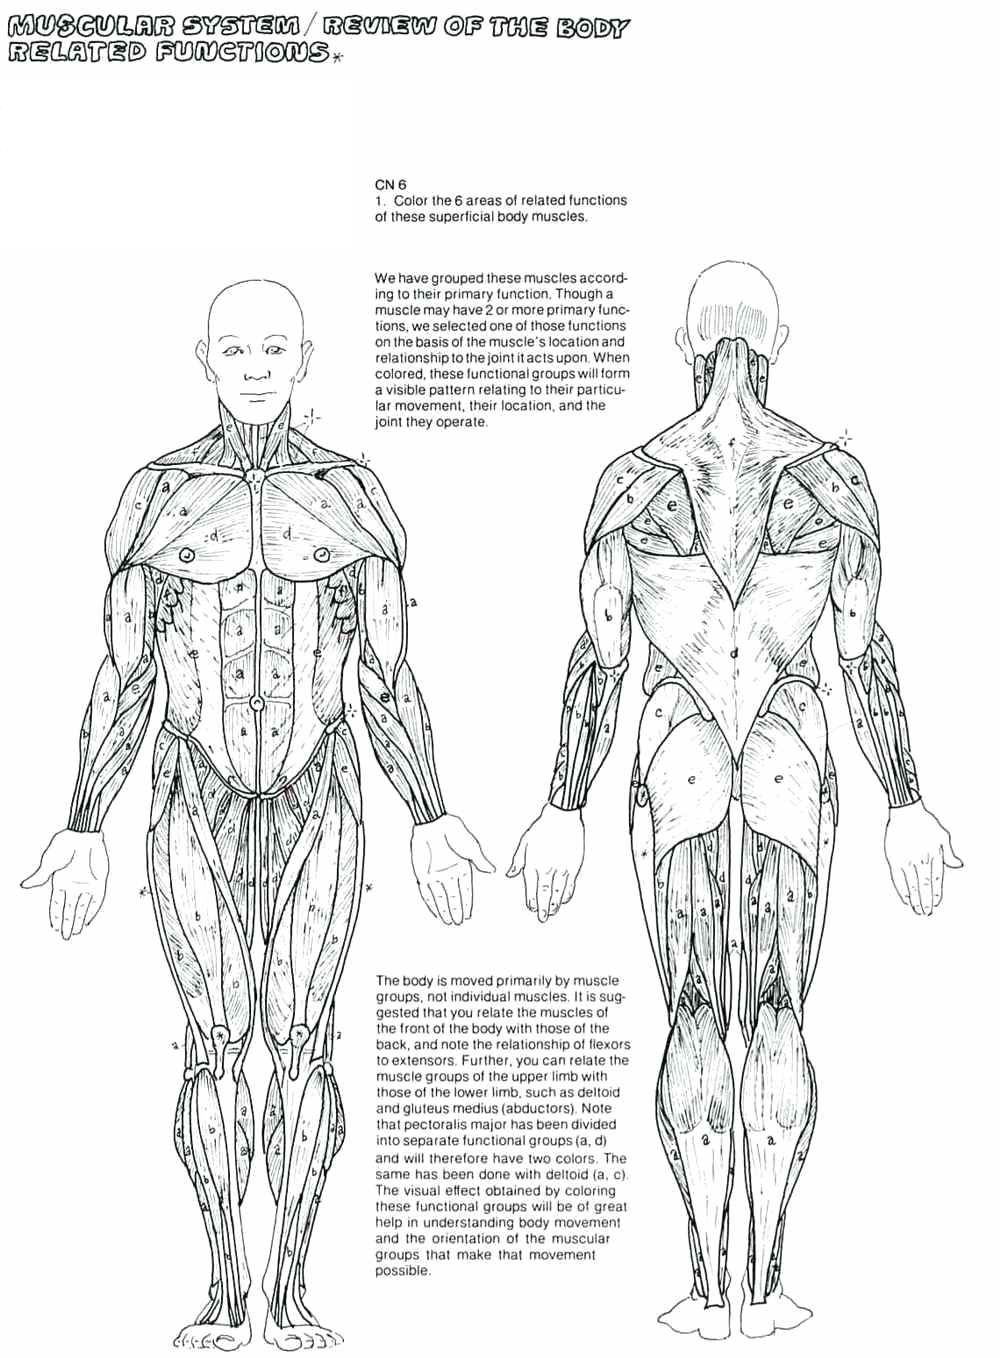 Human Superficial Muscles System Coloring Worksheet